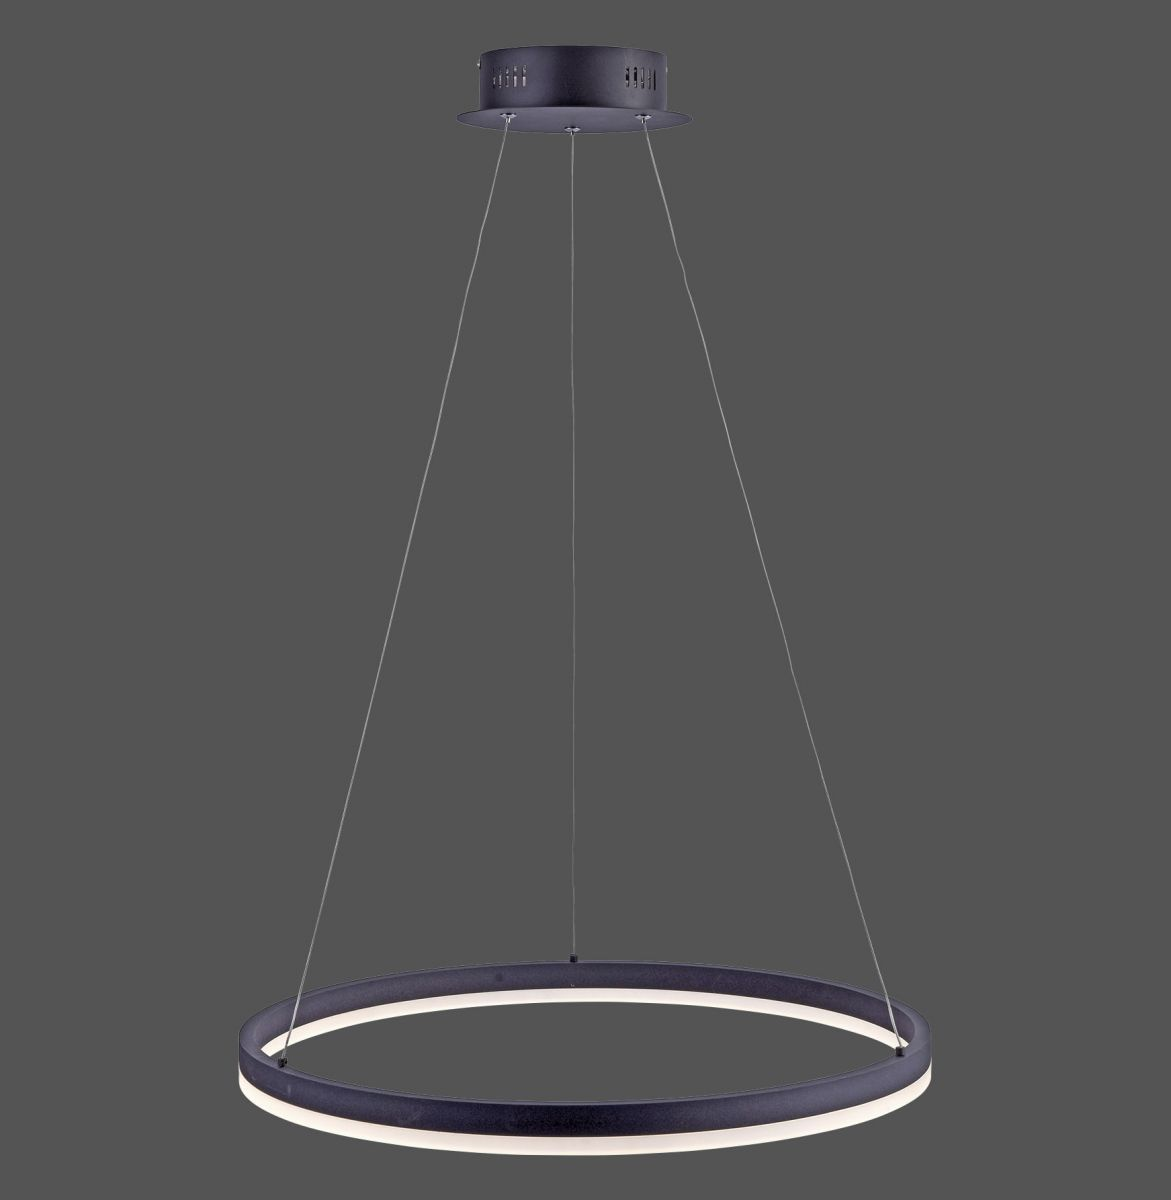 This website has the circle LED cheaper than Reuter This